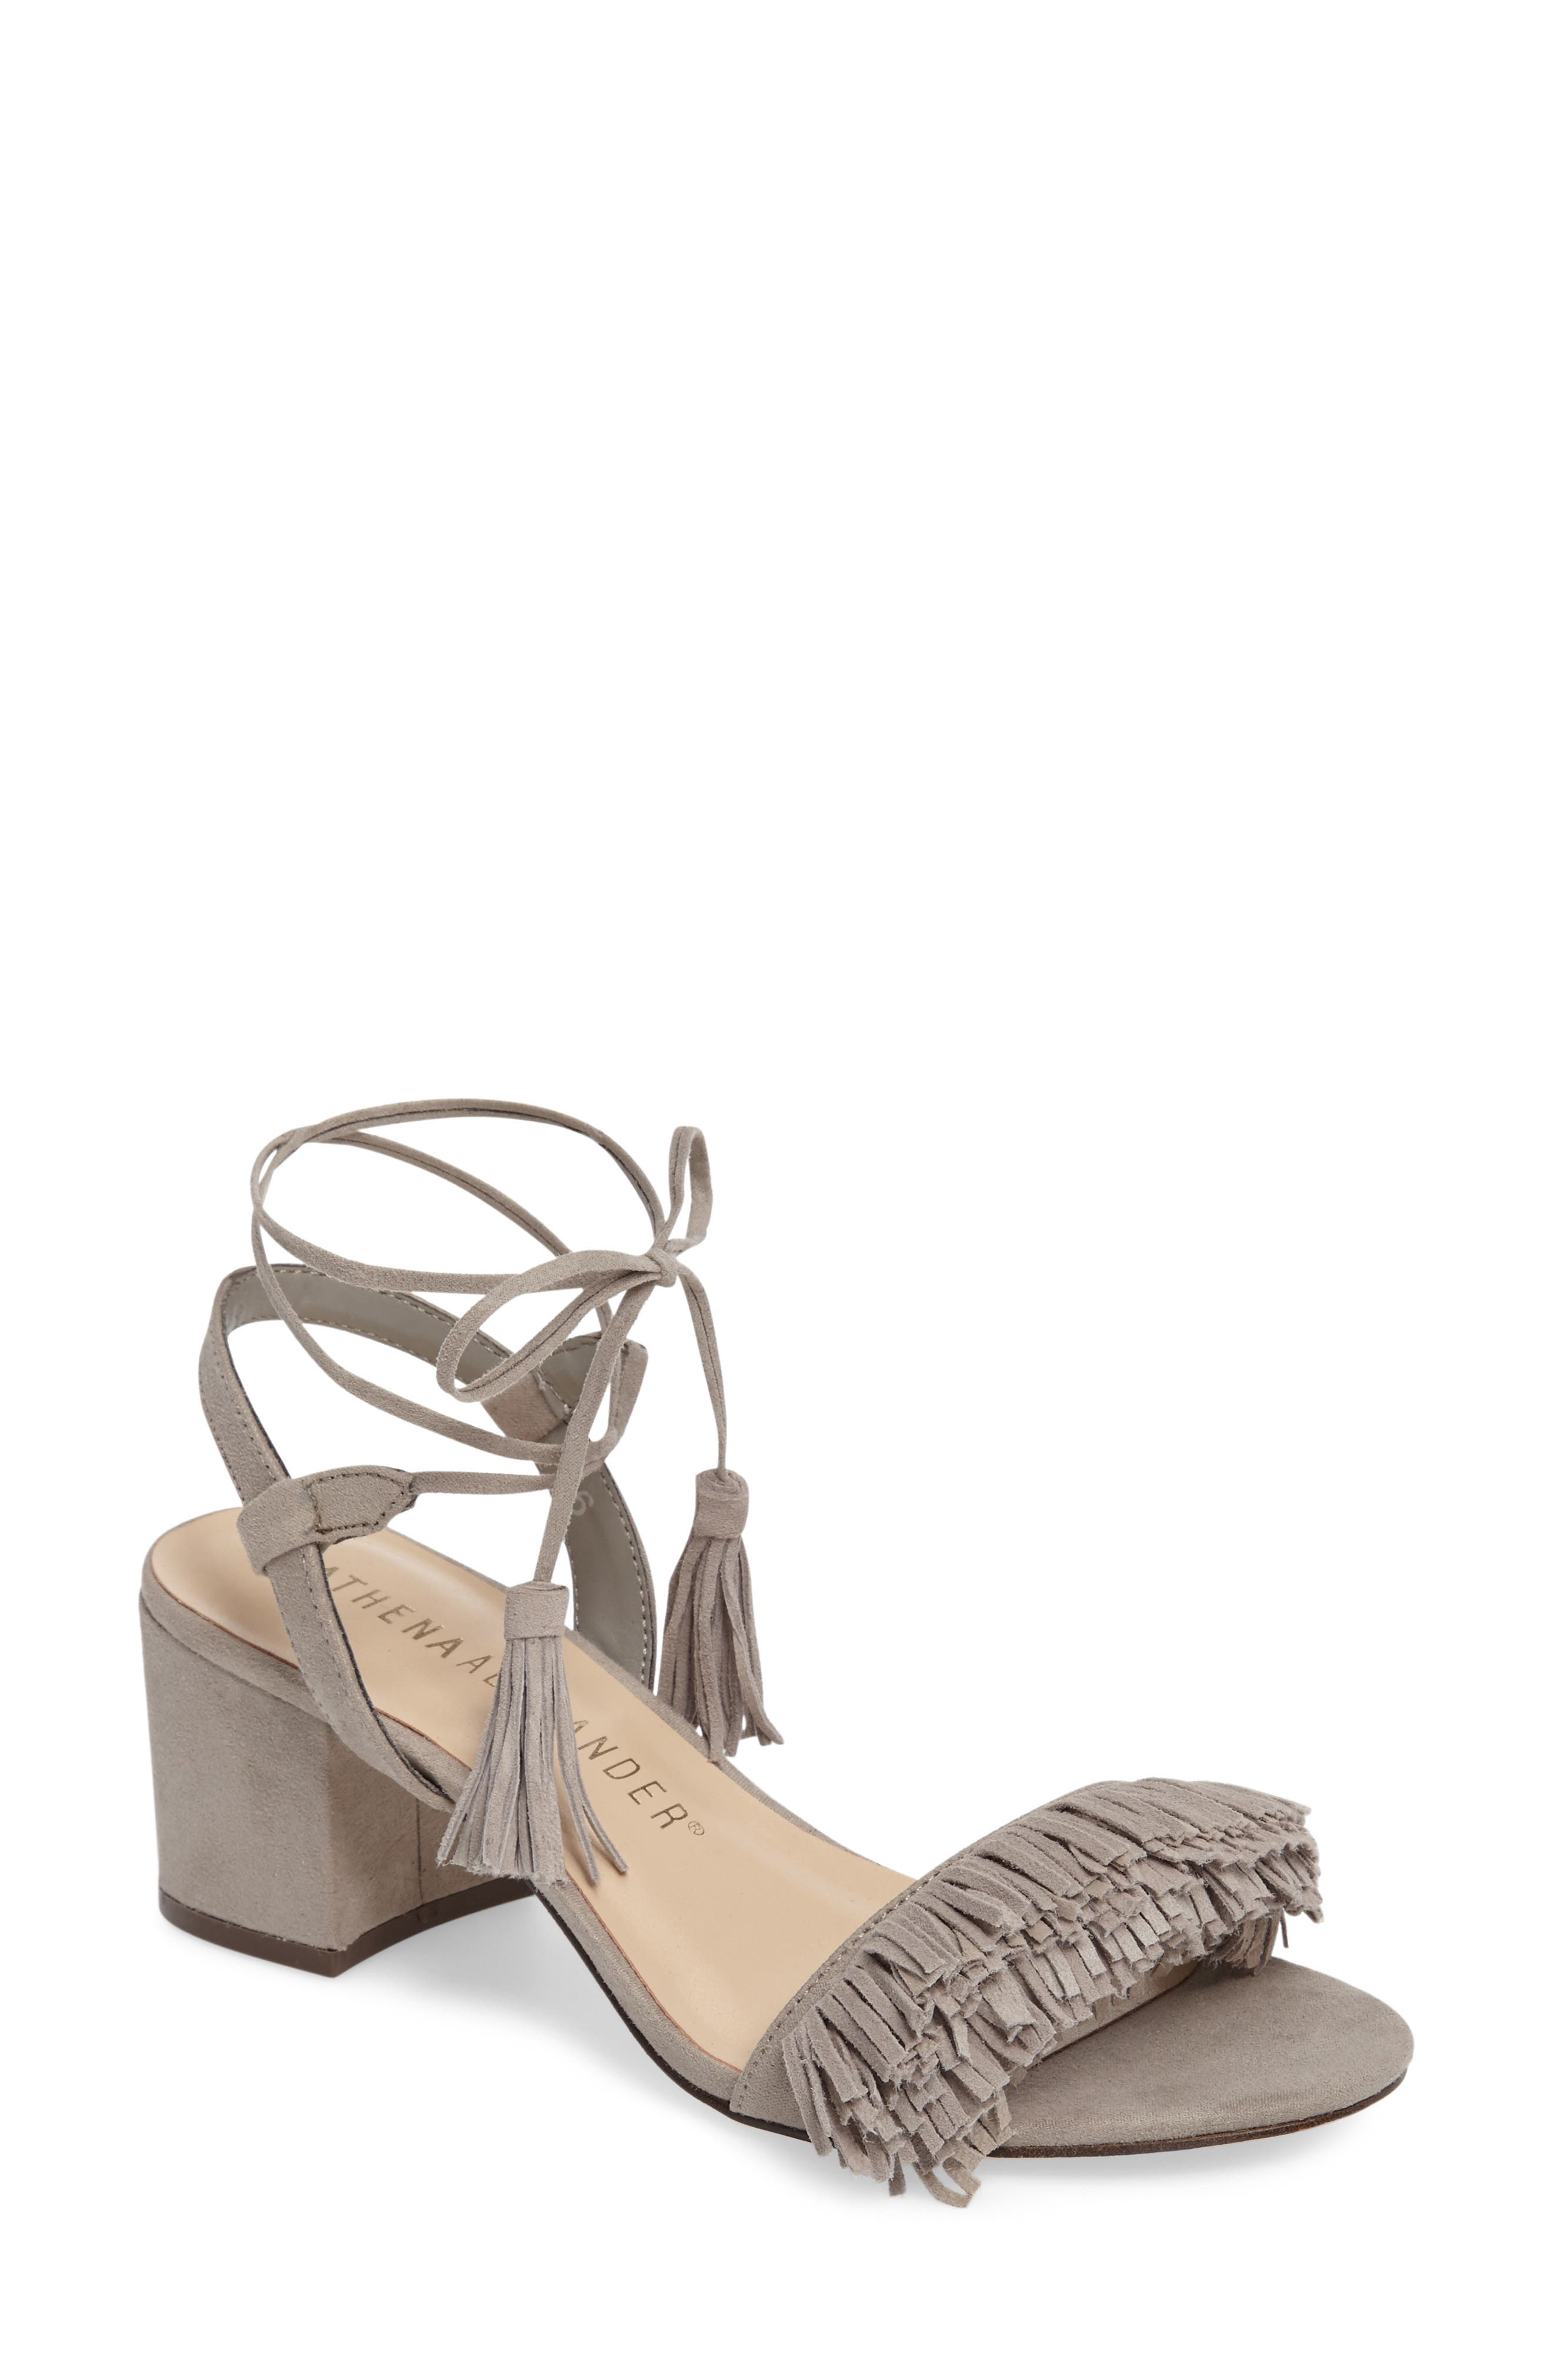 Alternate Image 1 Selected - Athena Alexander Fringed Ankle Wrap Sandal (Women)